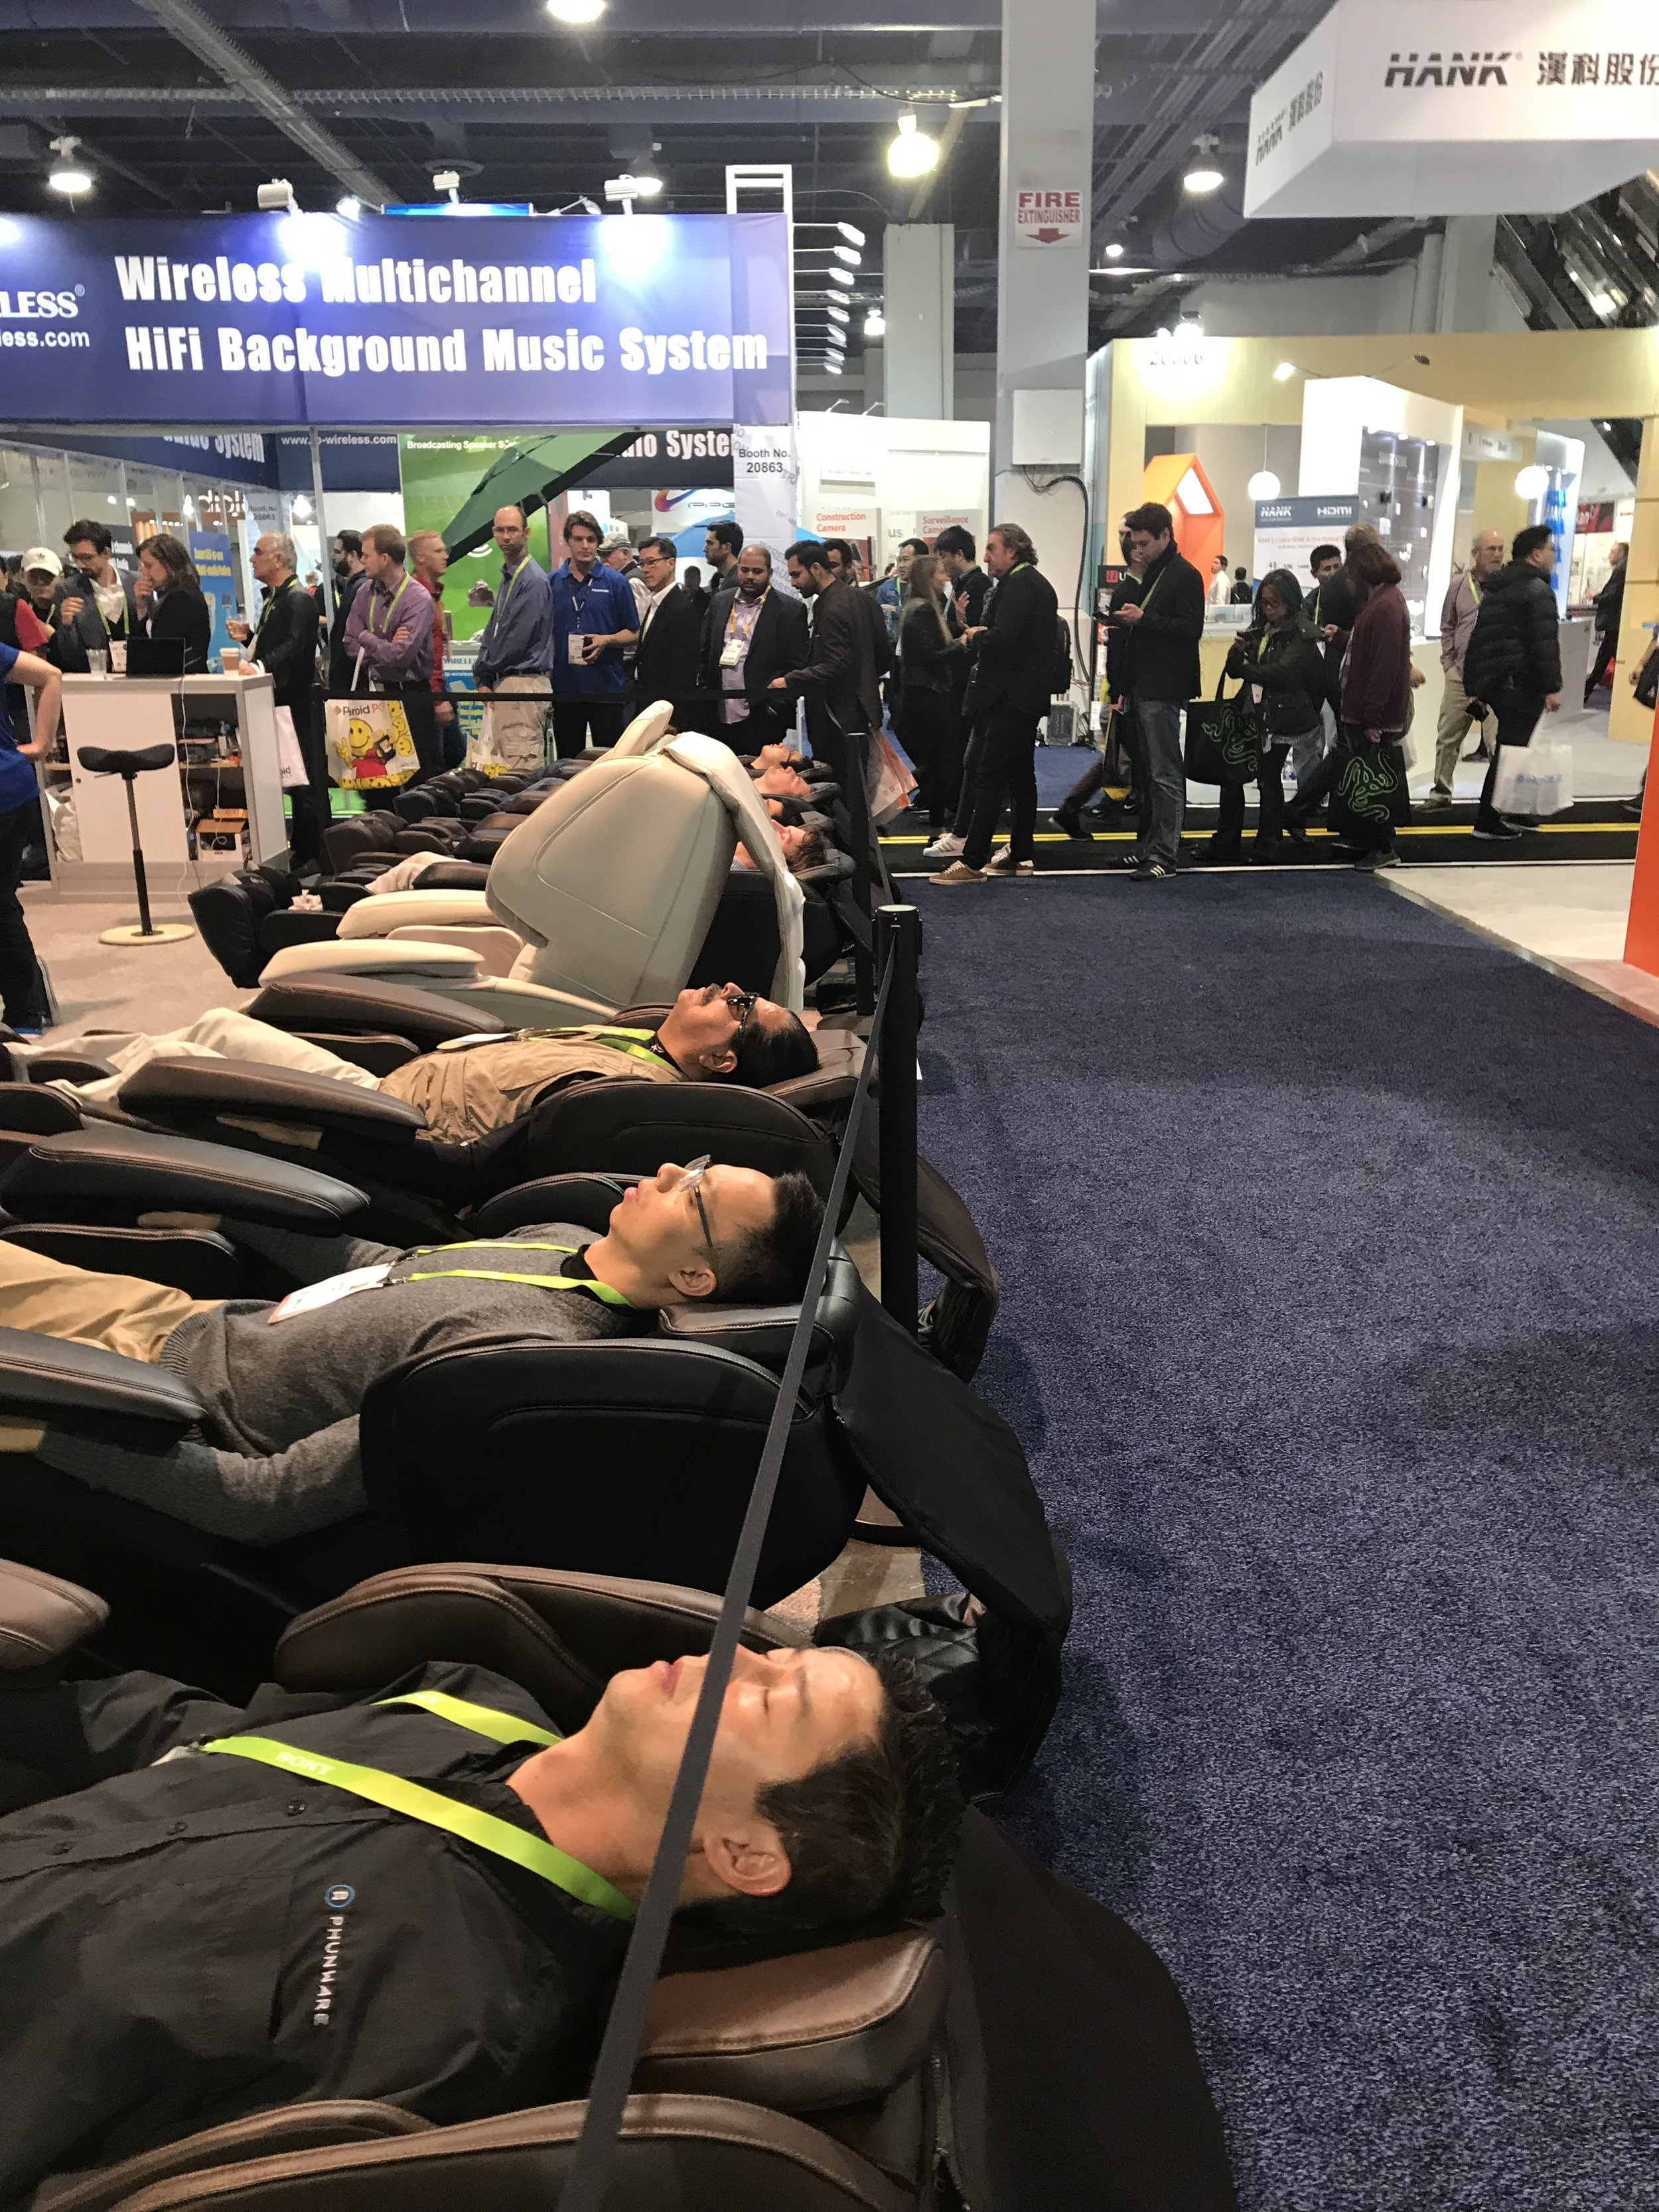 Pretty funny sight at CES, I'm all about that massage